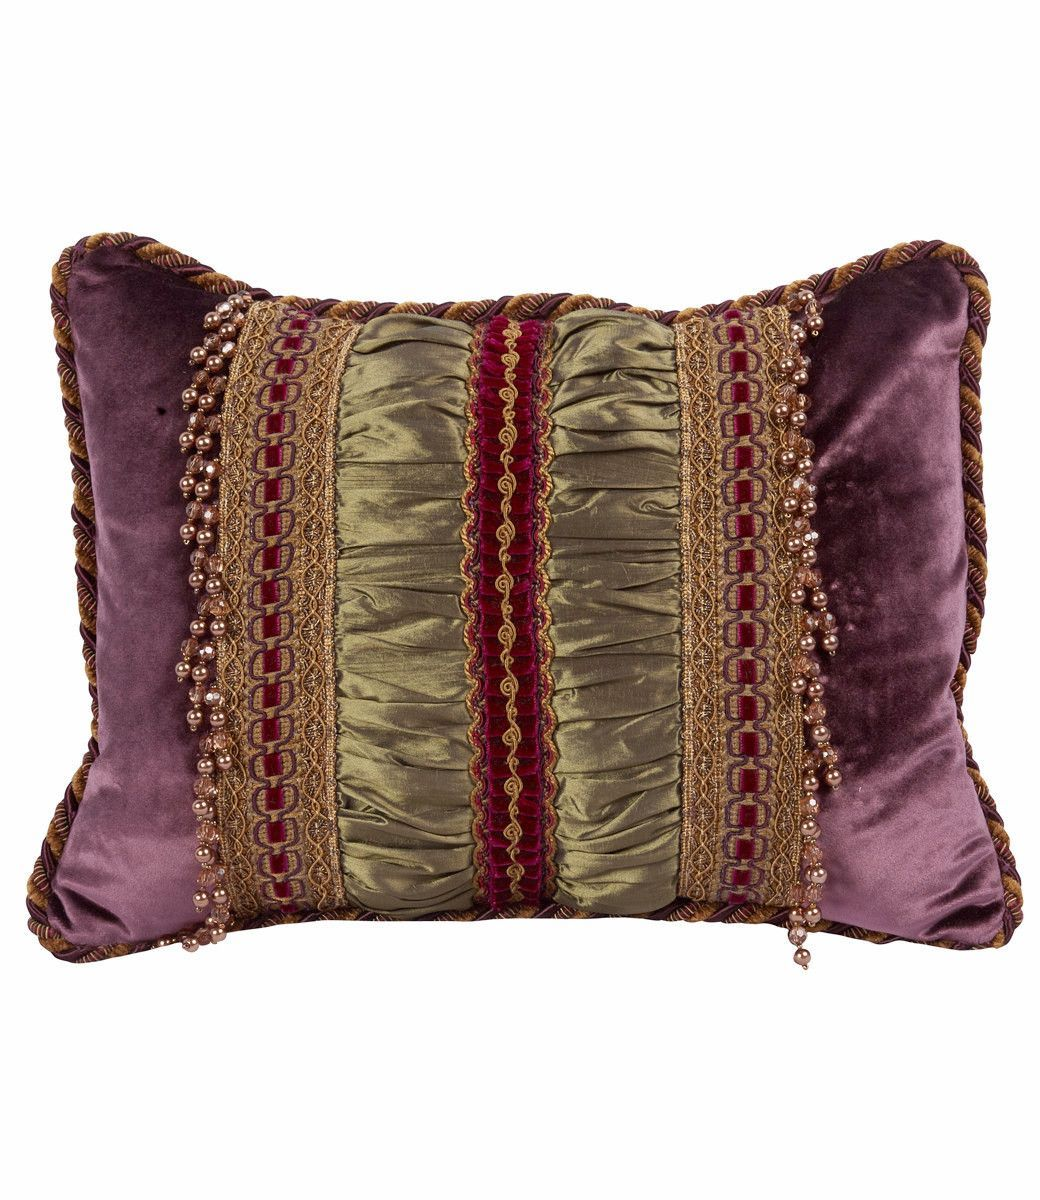 rpisite purple pillows httphighlifestylenetwpcontent make com pillow decorative highlifestylenetwpcontent